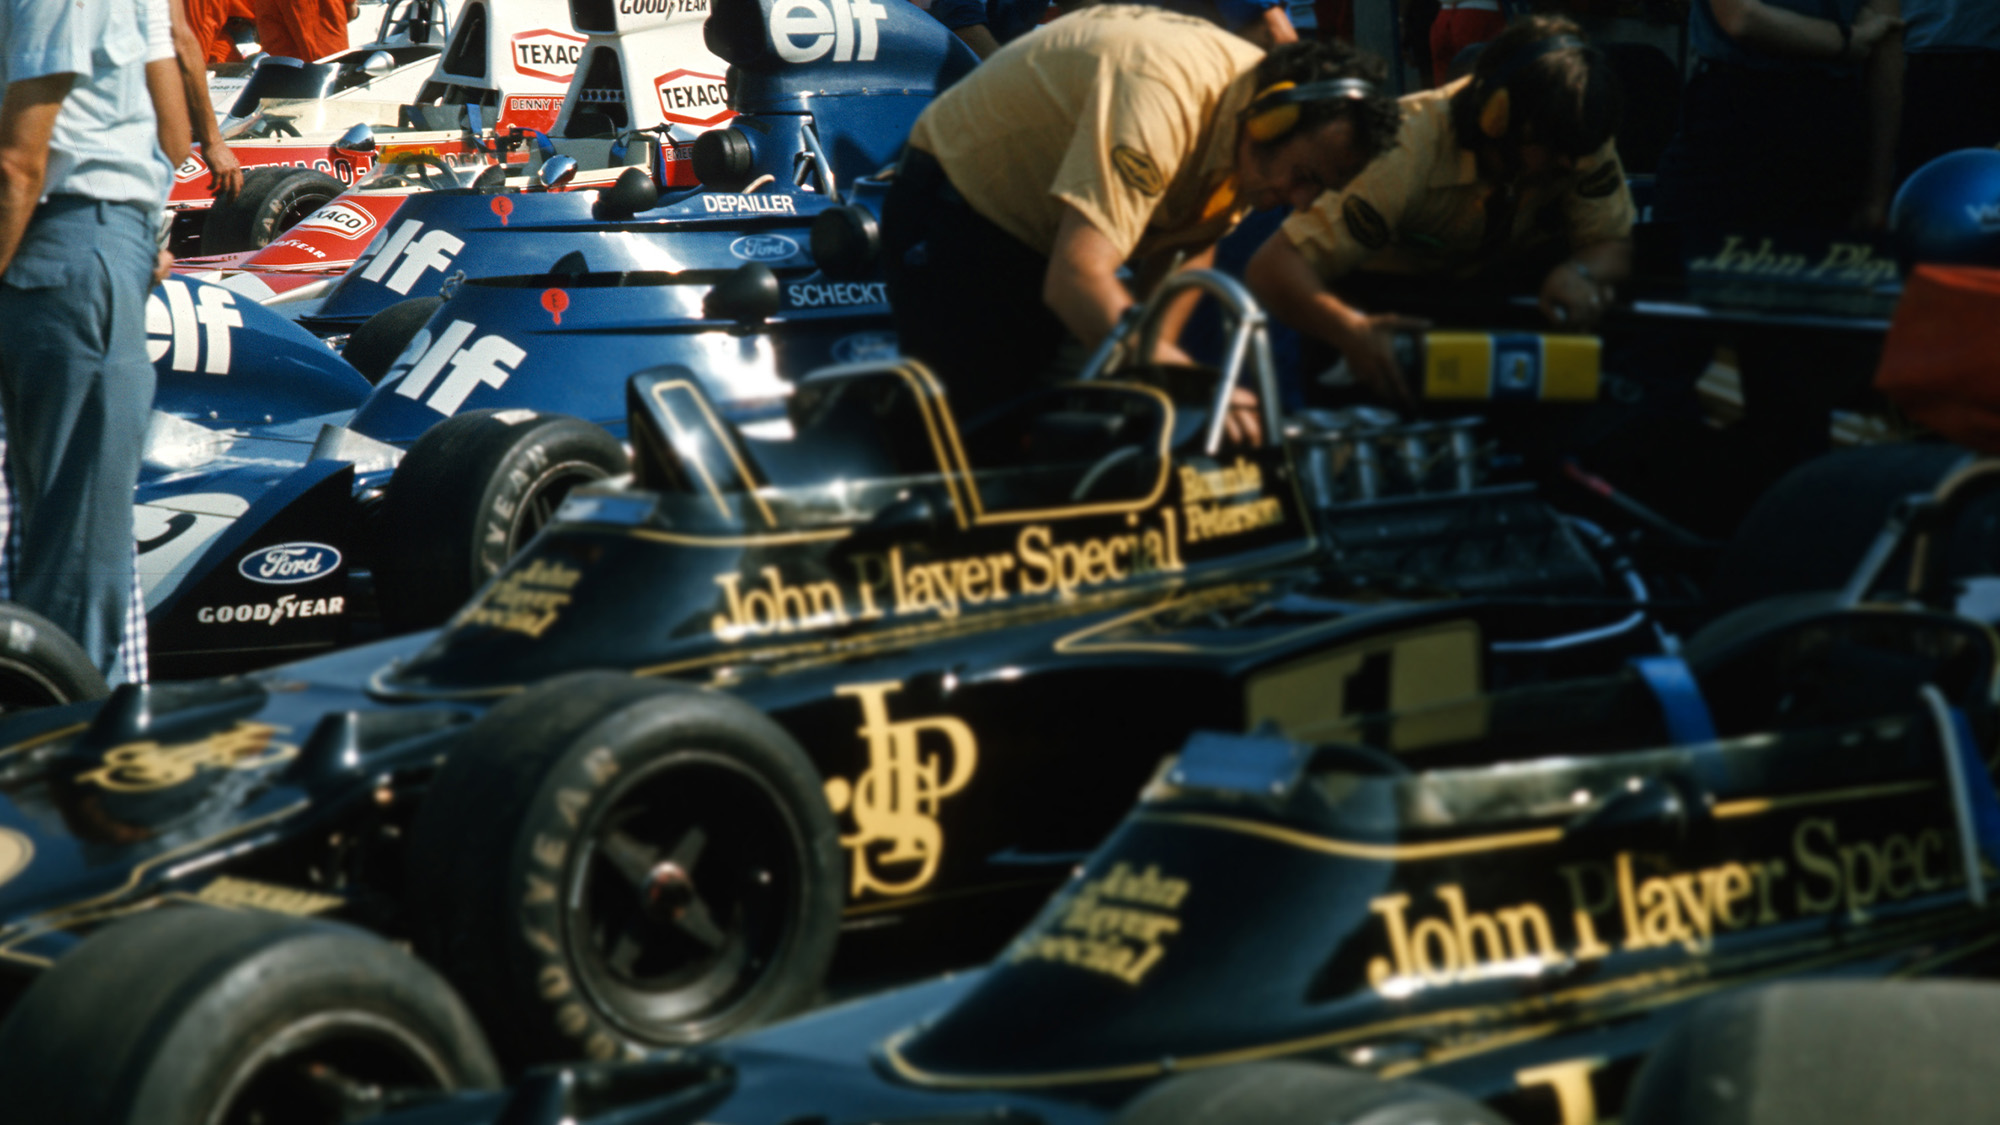 1974 Lotus Tyrrell and McLaren cars in the pits